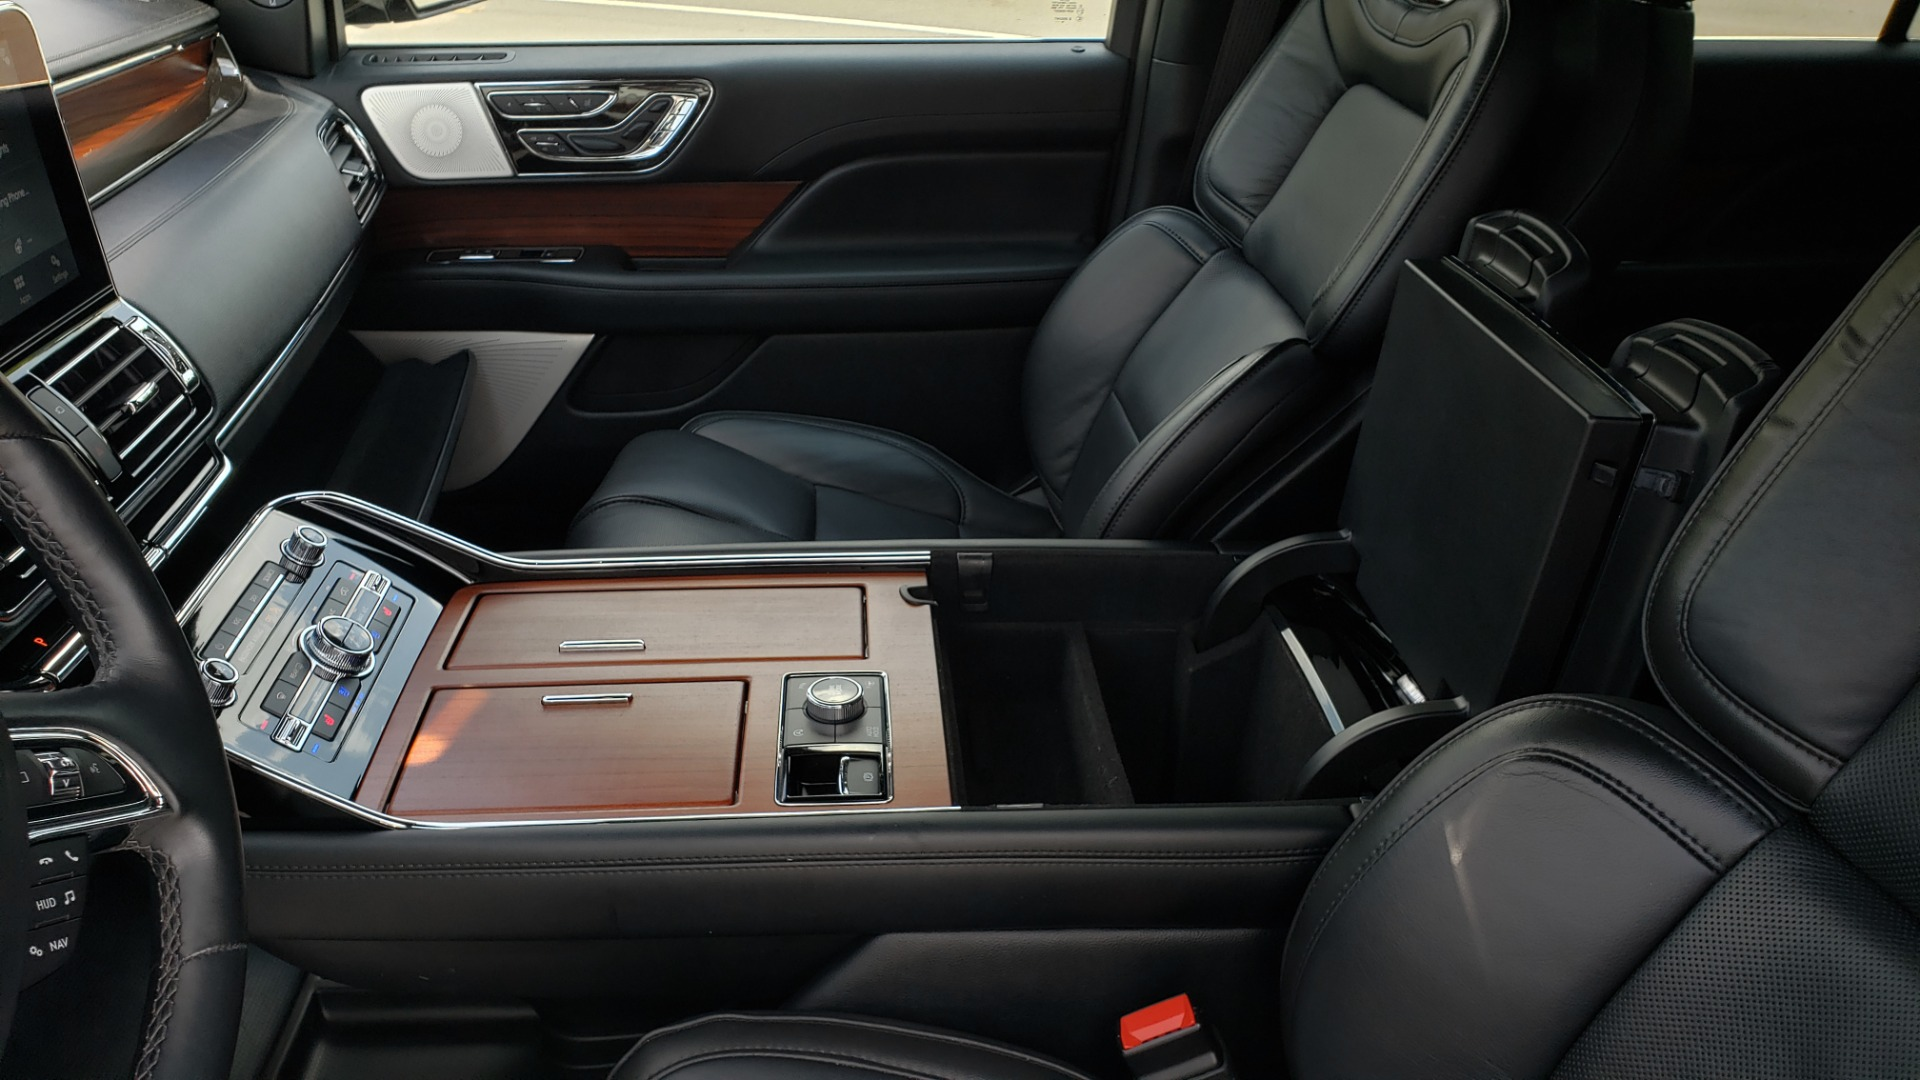 Used 2019 Lincoln NAVIGATOR RESERVE 4X4 / NAV / PANO-ROOF / REVEL ULTIMA AUDIO / 3-ROW / REARVIEW for sale $74,795 at Formula Imports in Charlotte NC 28227 65